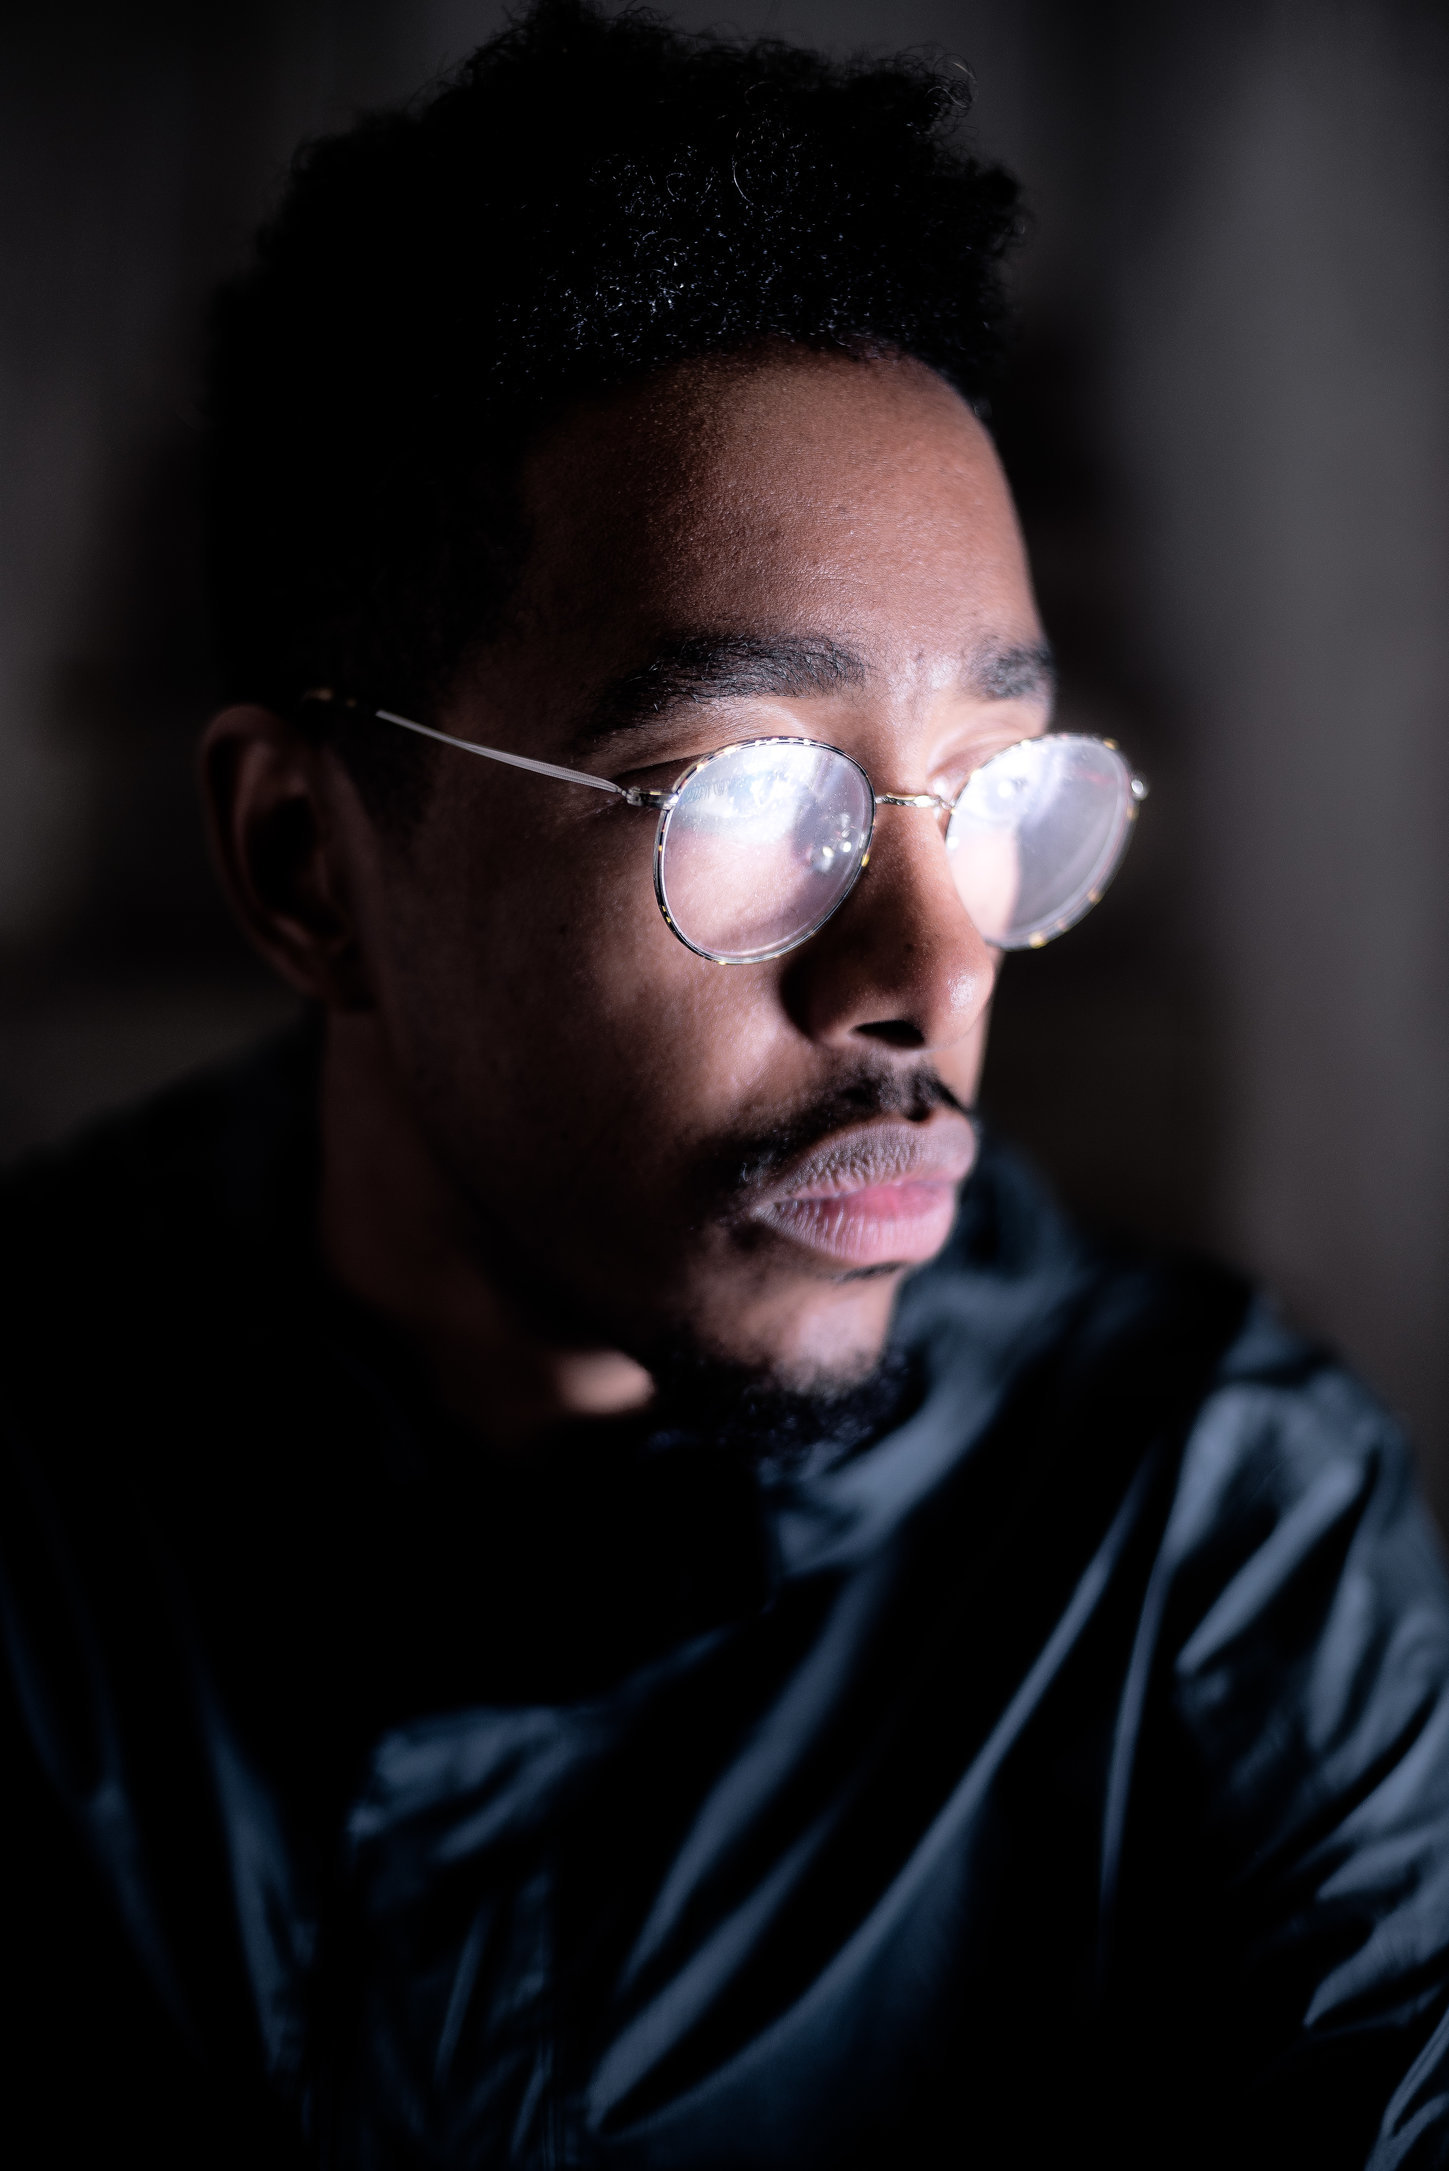 oddisee homepage edit2.jpg